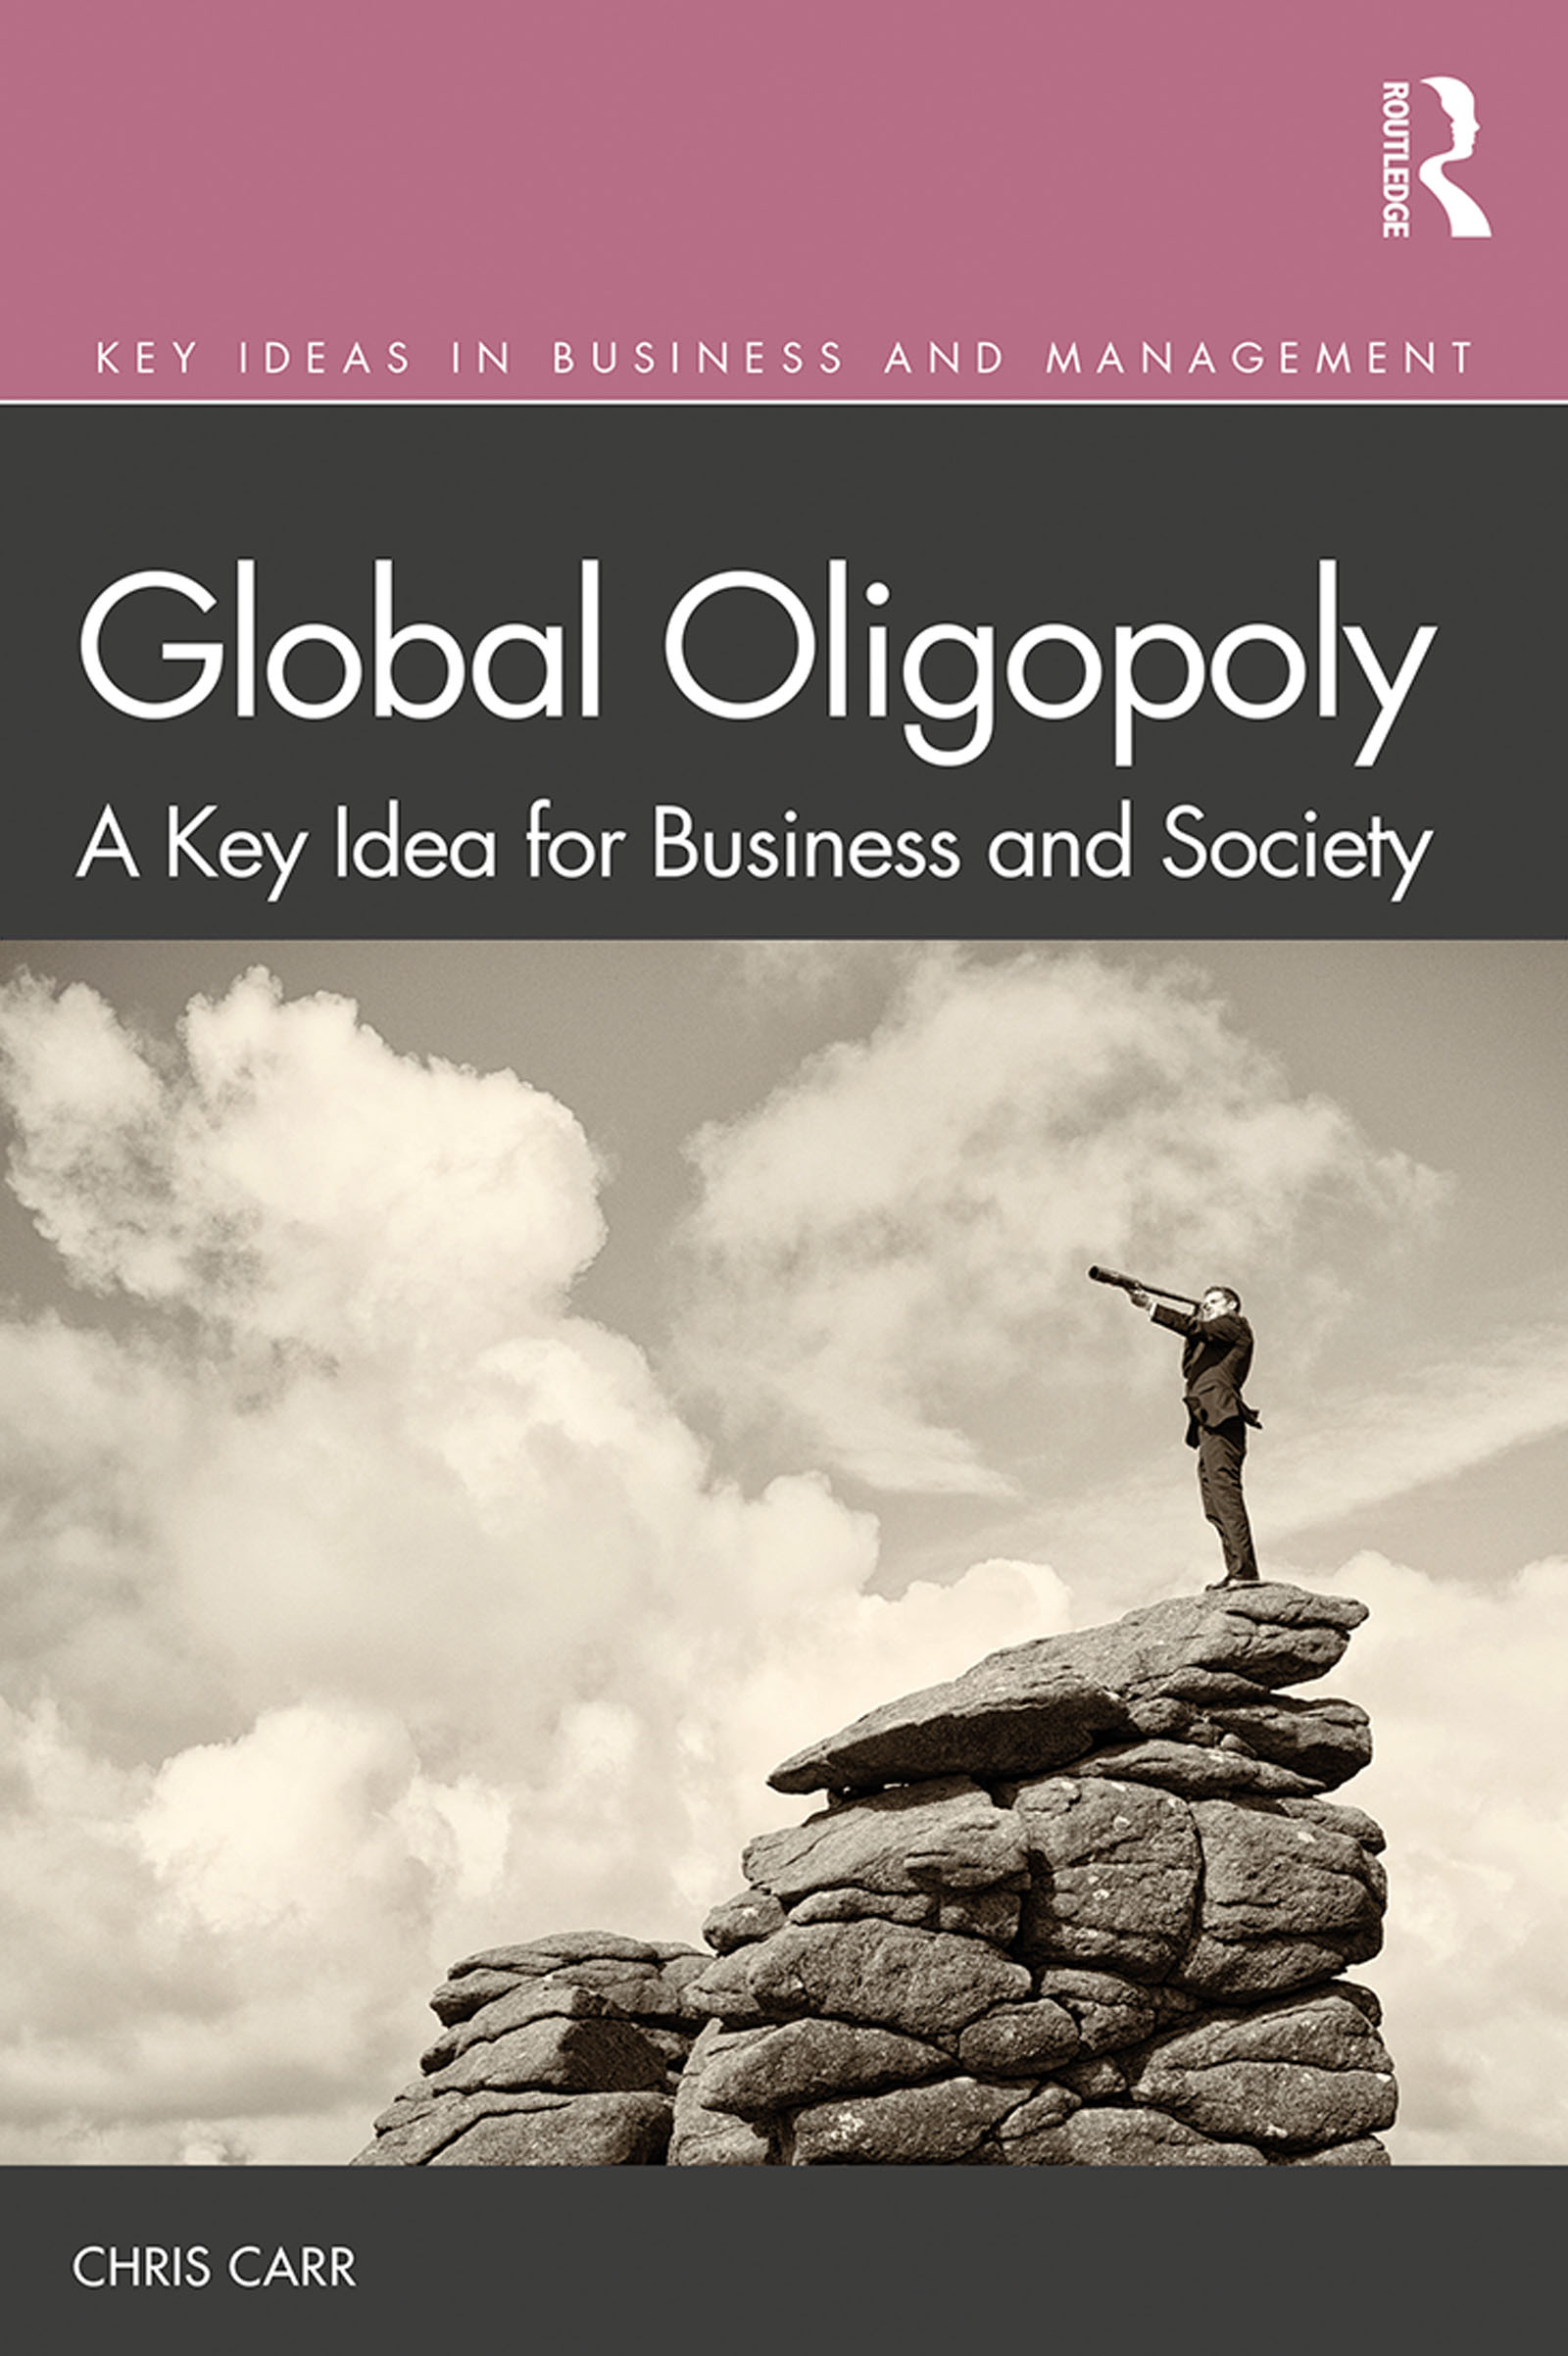 Global Oligopoly: A Key Idea for Business and Society book cover